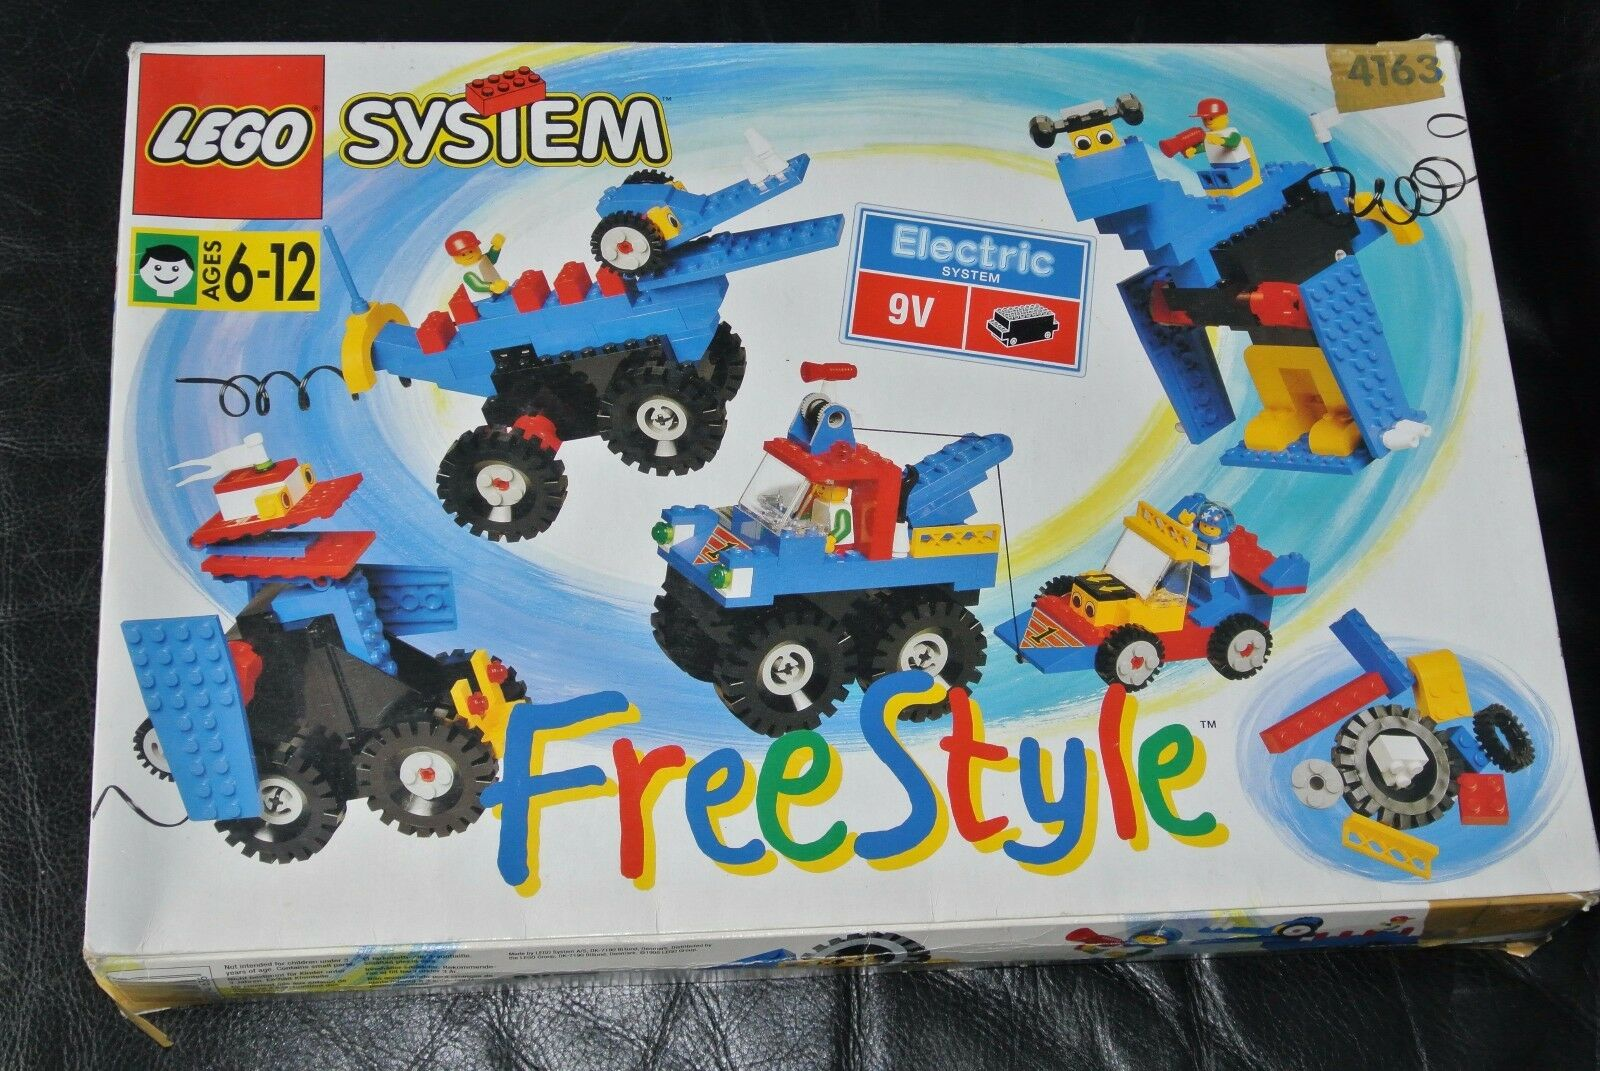 LEGO SYSTEM 4163 Free Free Free Style. b7f0e8